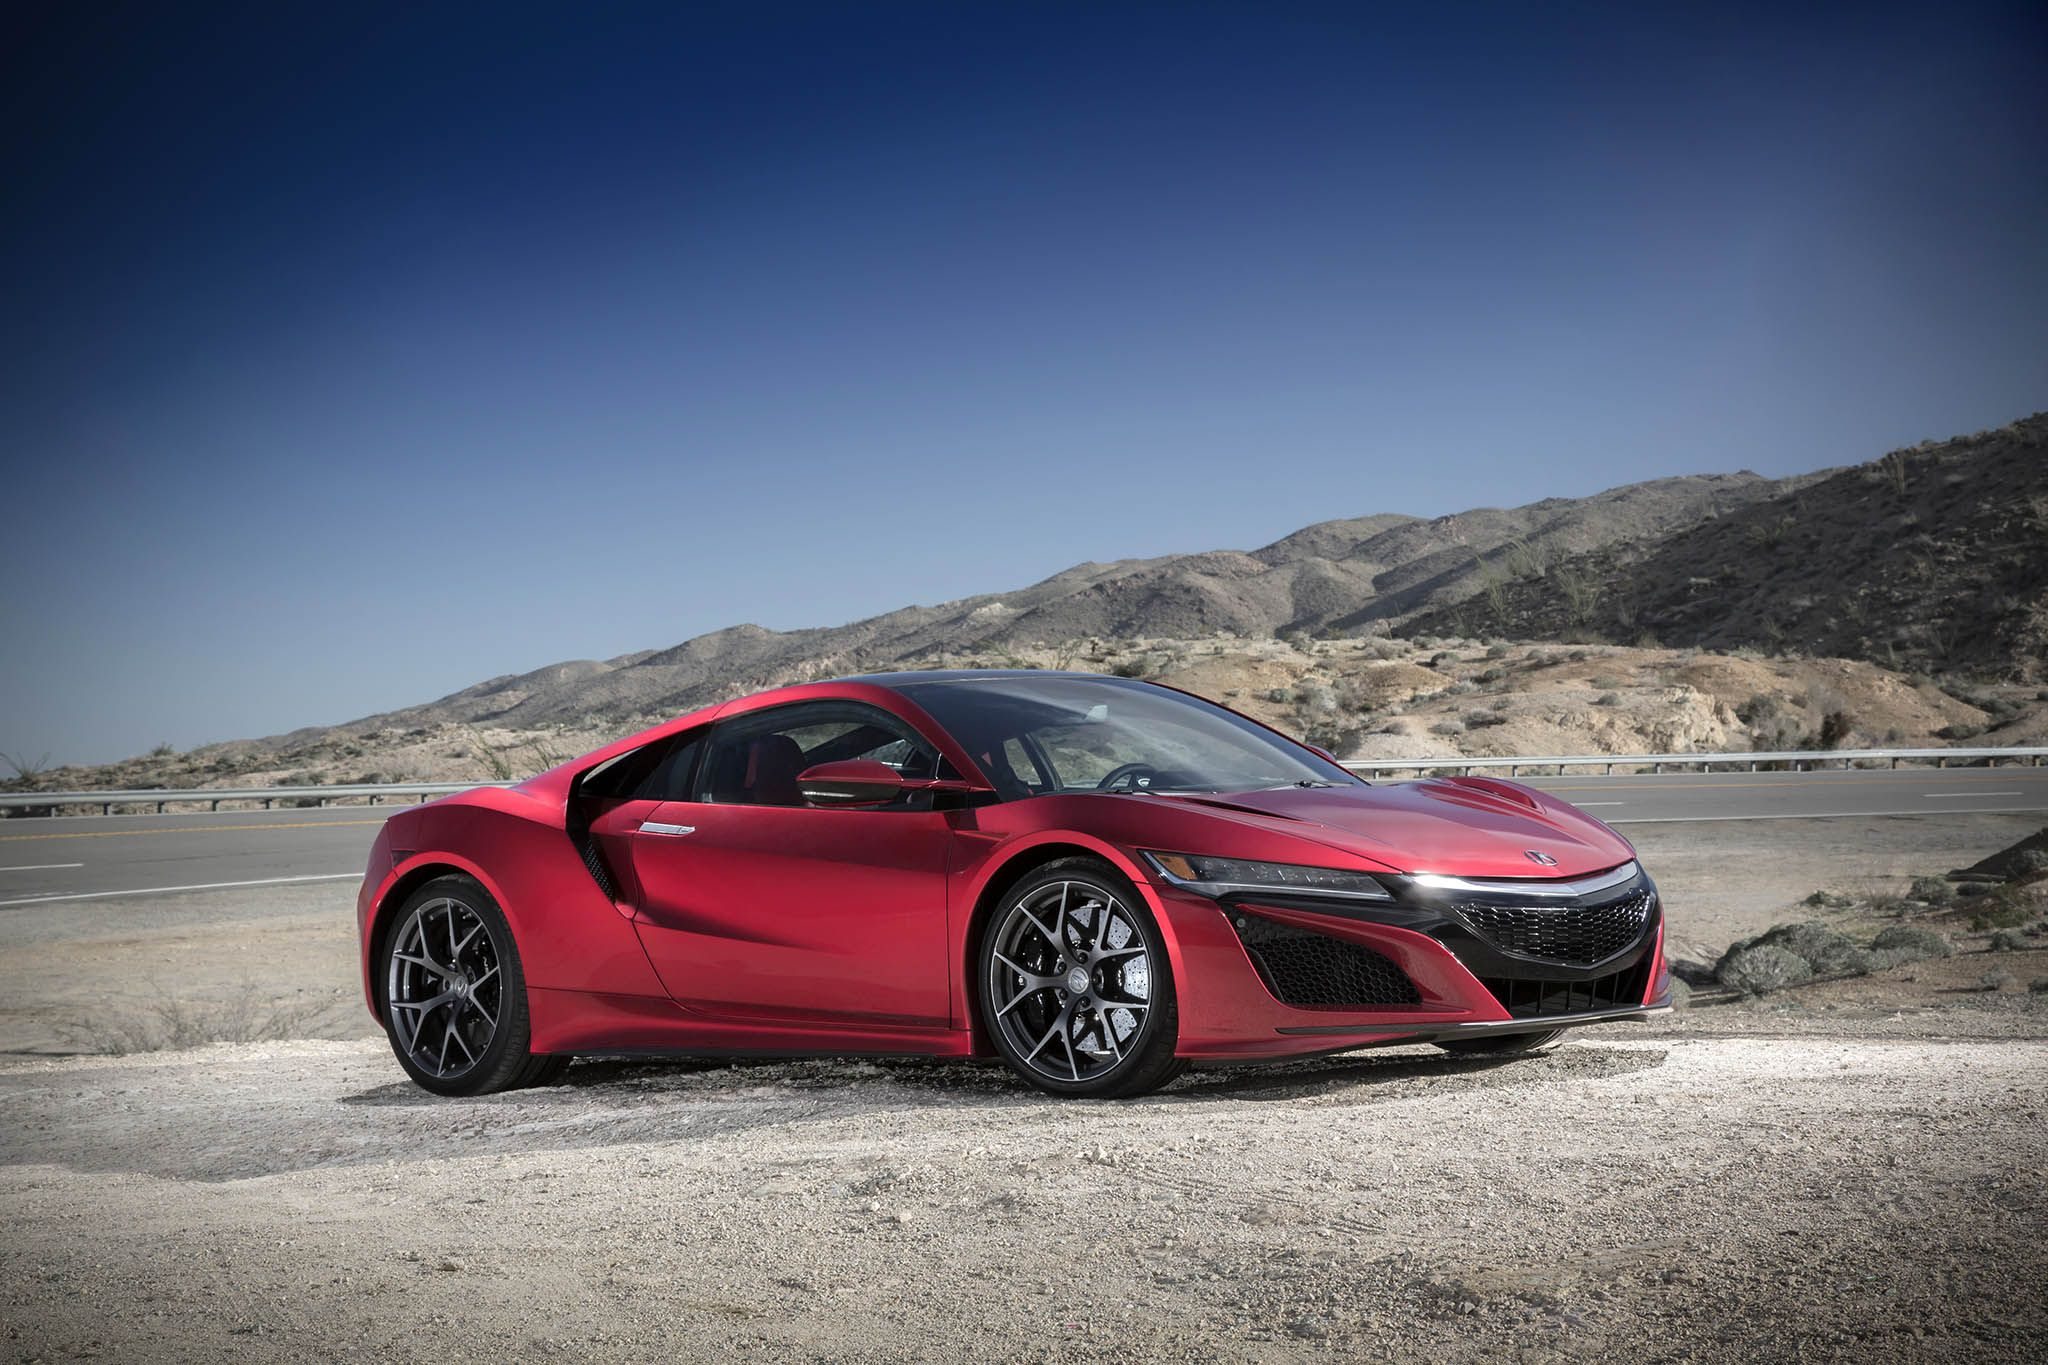 Acura Nsx Supercars Sportscars Exoticcars Acuransx Cool Red Cars